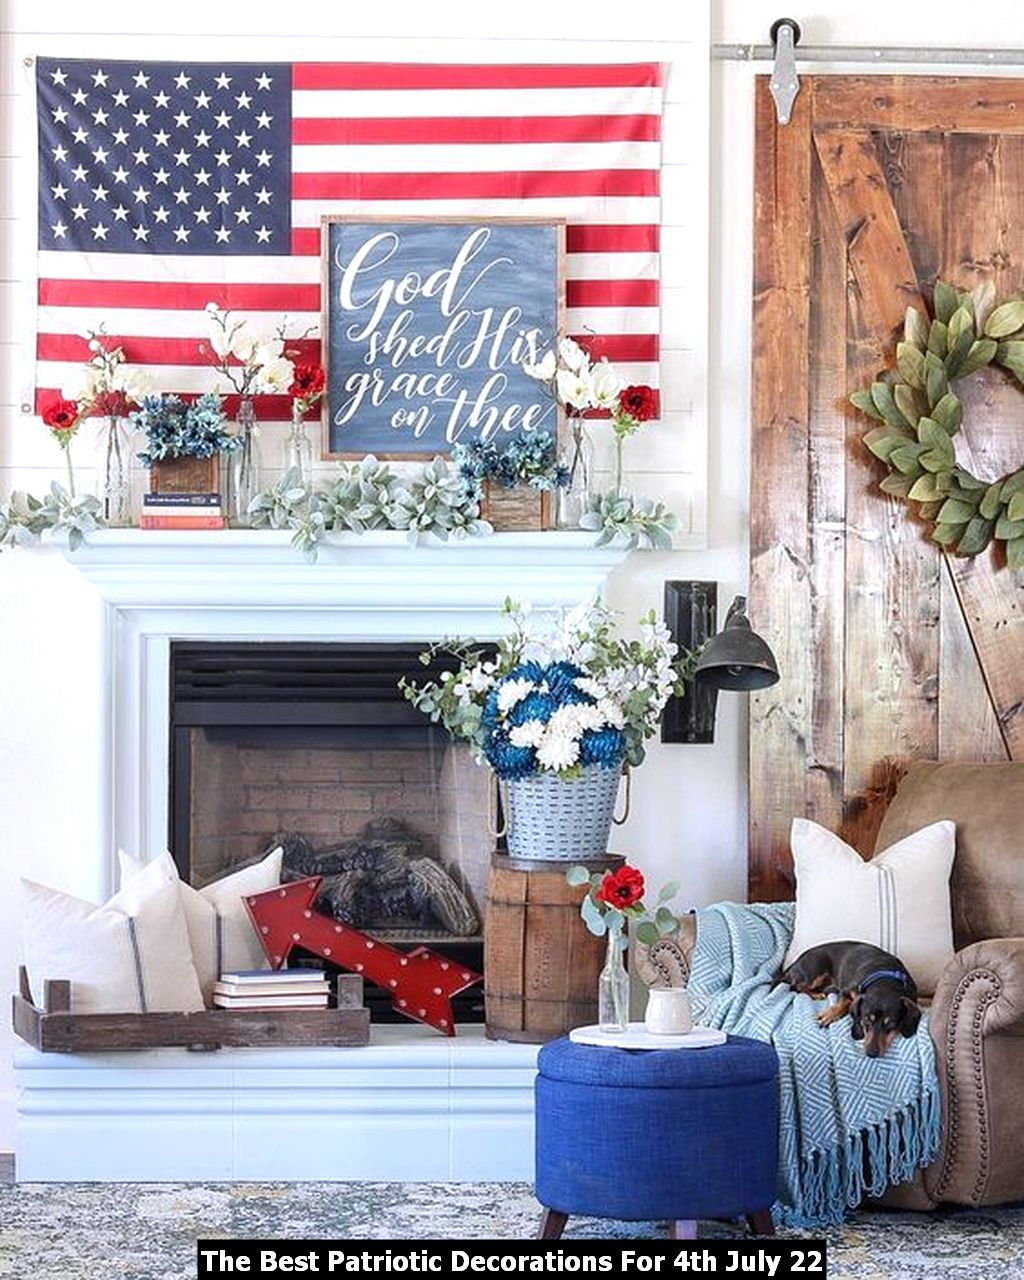 The Best Patriotic Decorations For 4th July 22